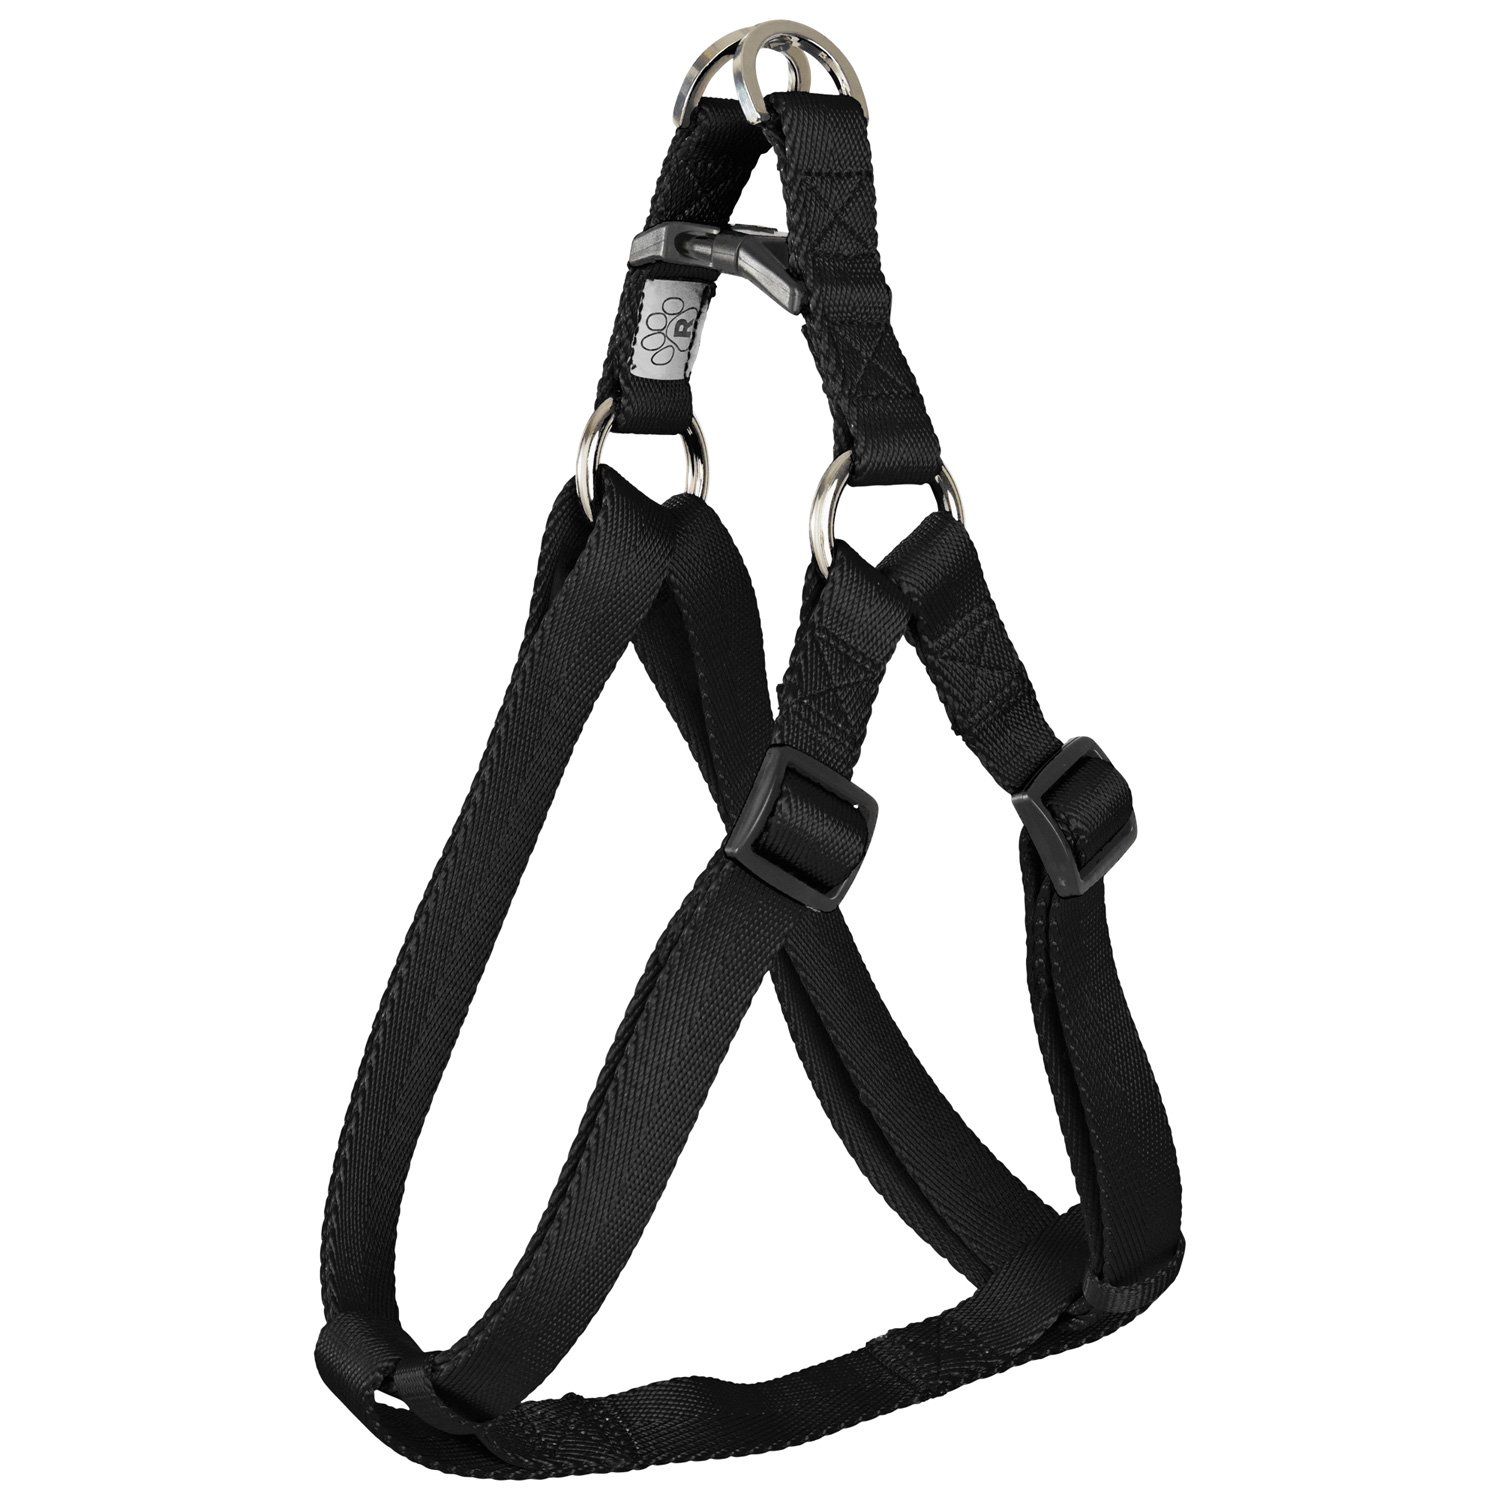 walking comfort for adjustable soft p straps comforter harness and big buy dog leather training harnesses of extra doberman your spiked c